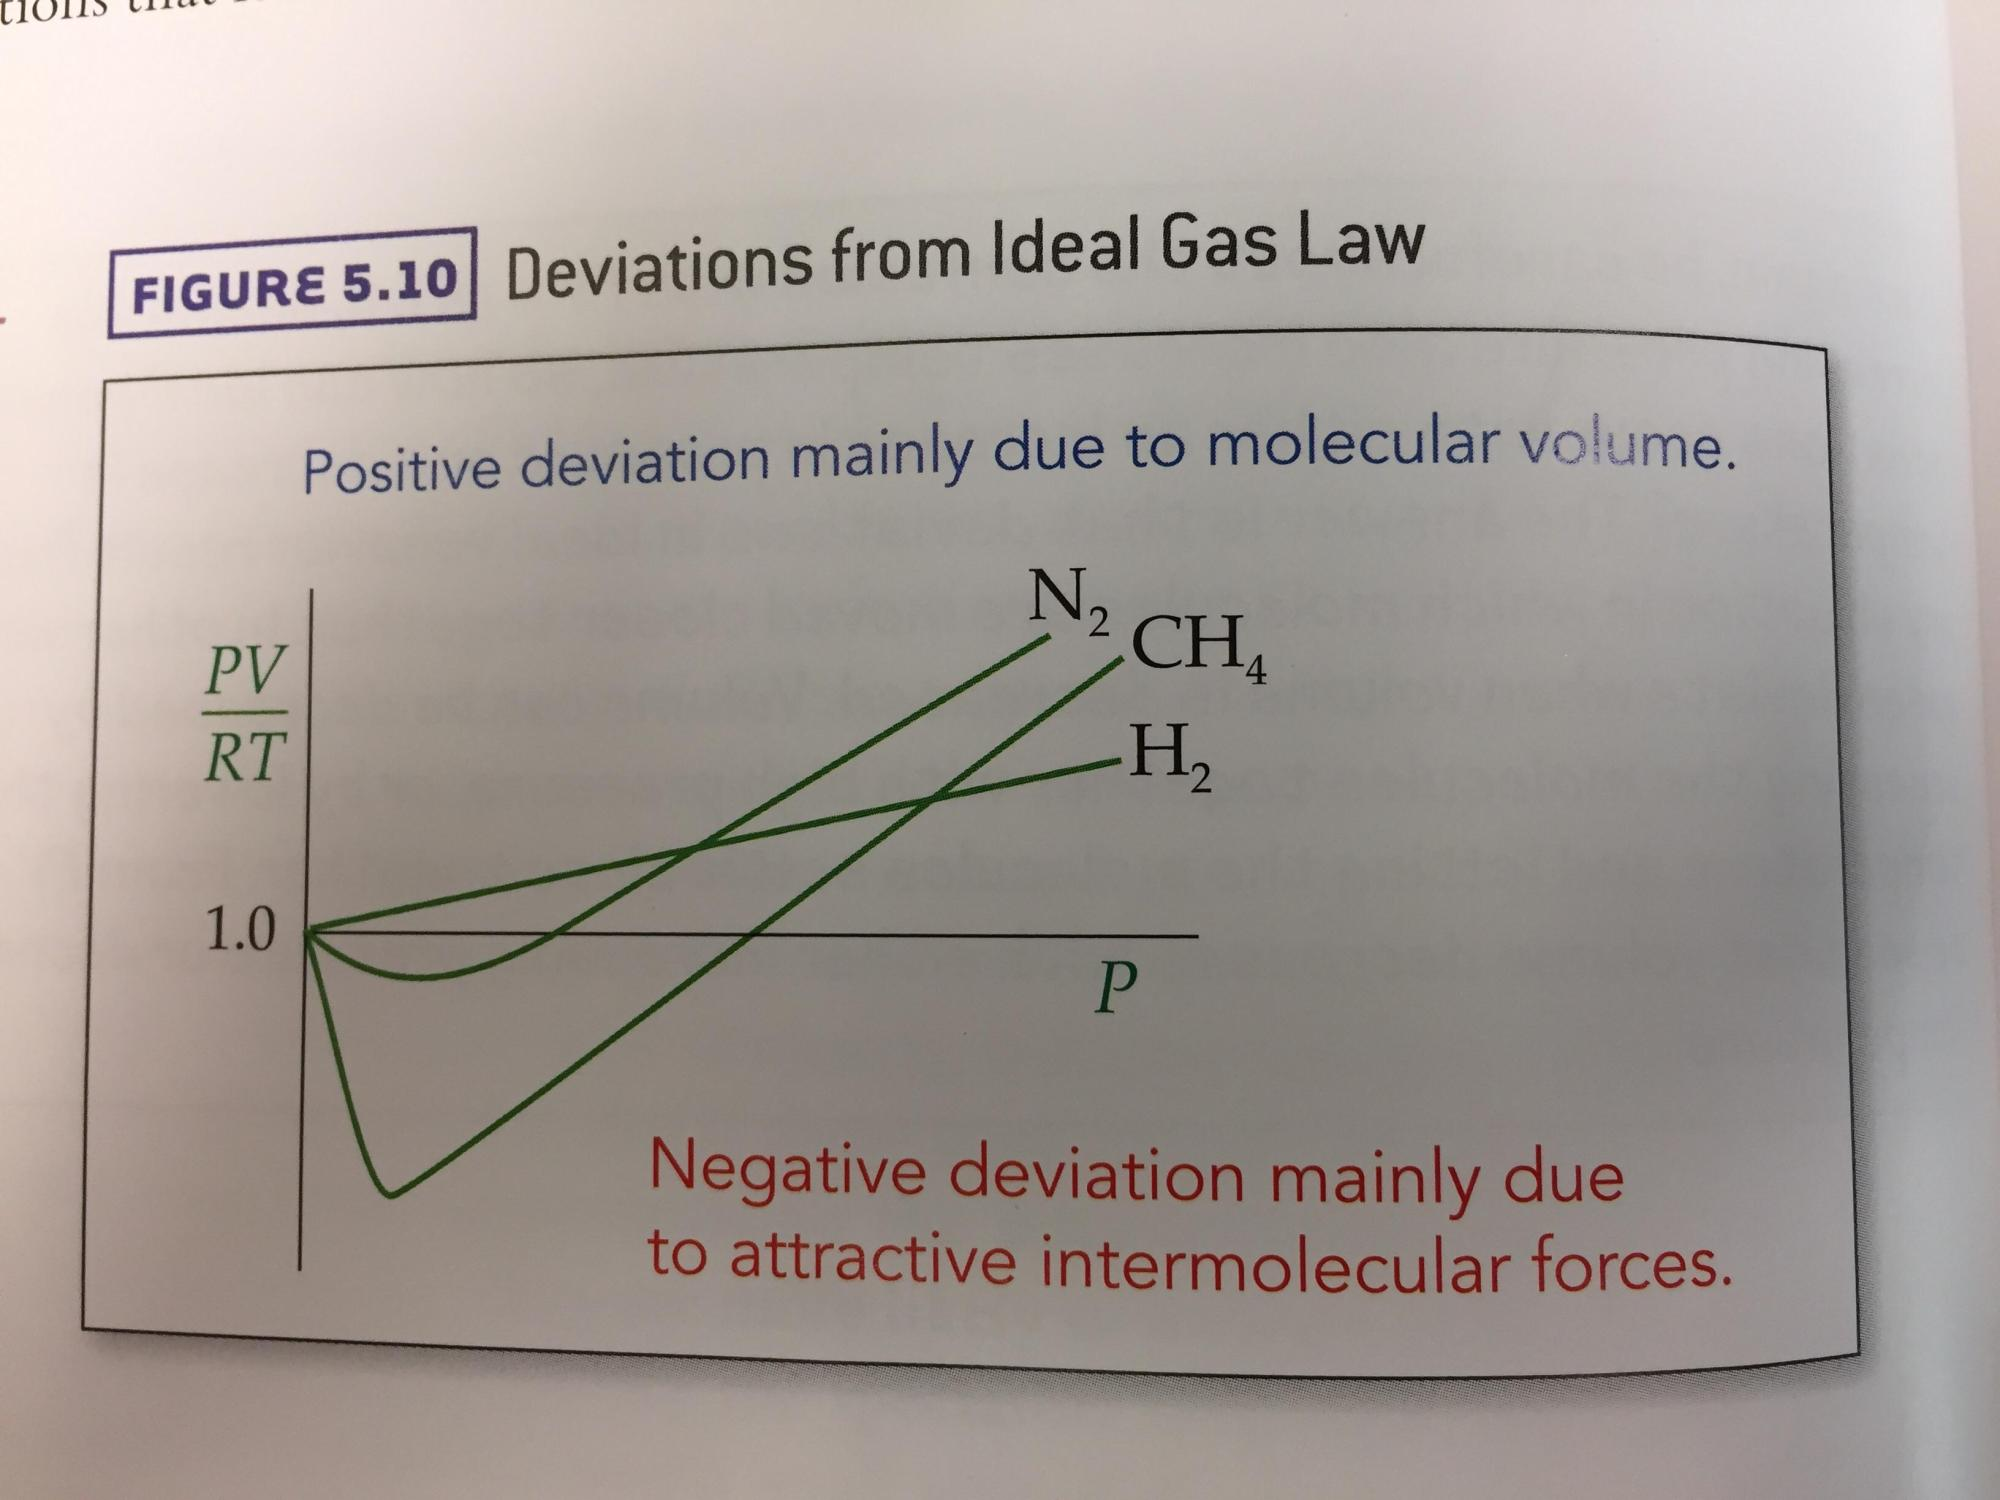 hight resolution of can someone explain this ideal gas law deviations graph